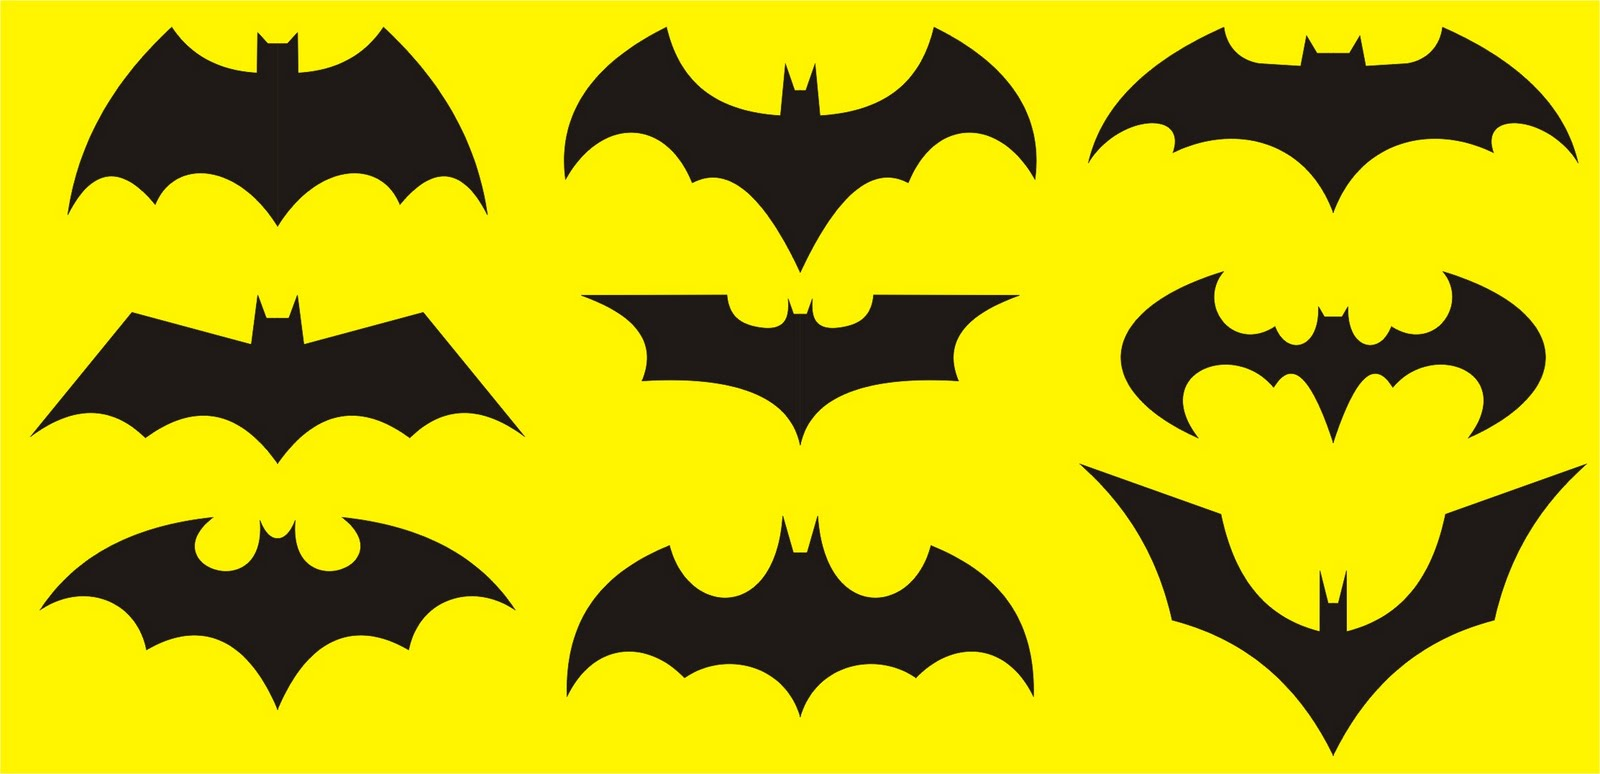 15 Batman Simbolo Frees That You Can Download To Computer Free Image